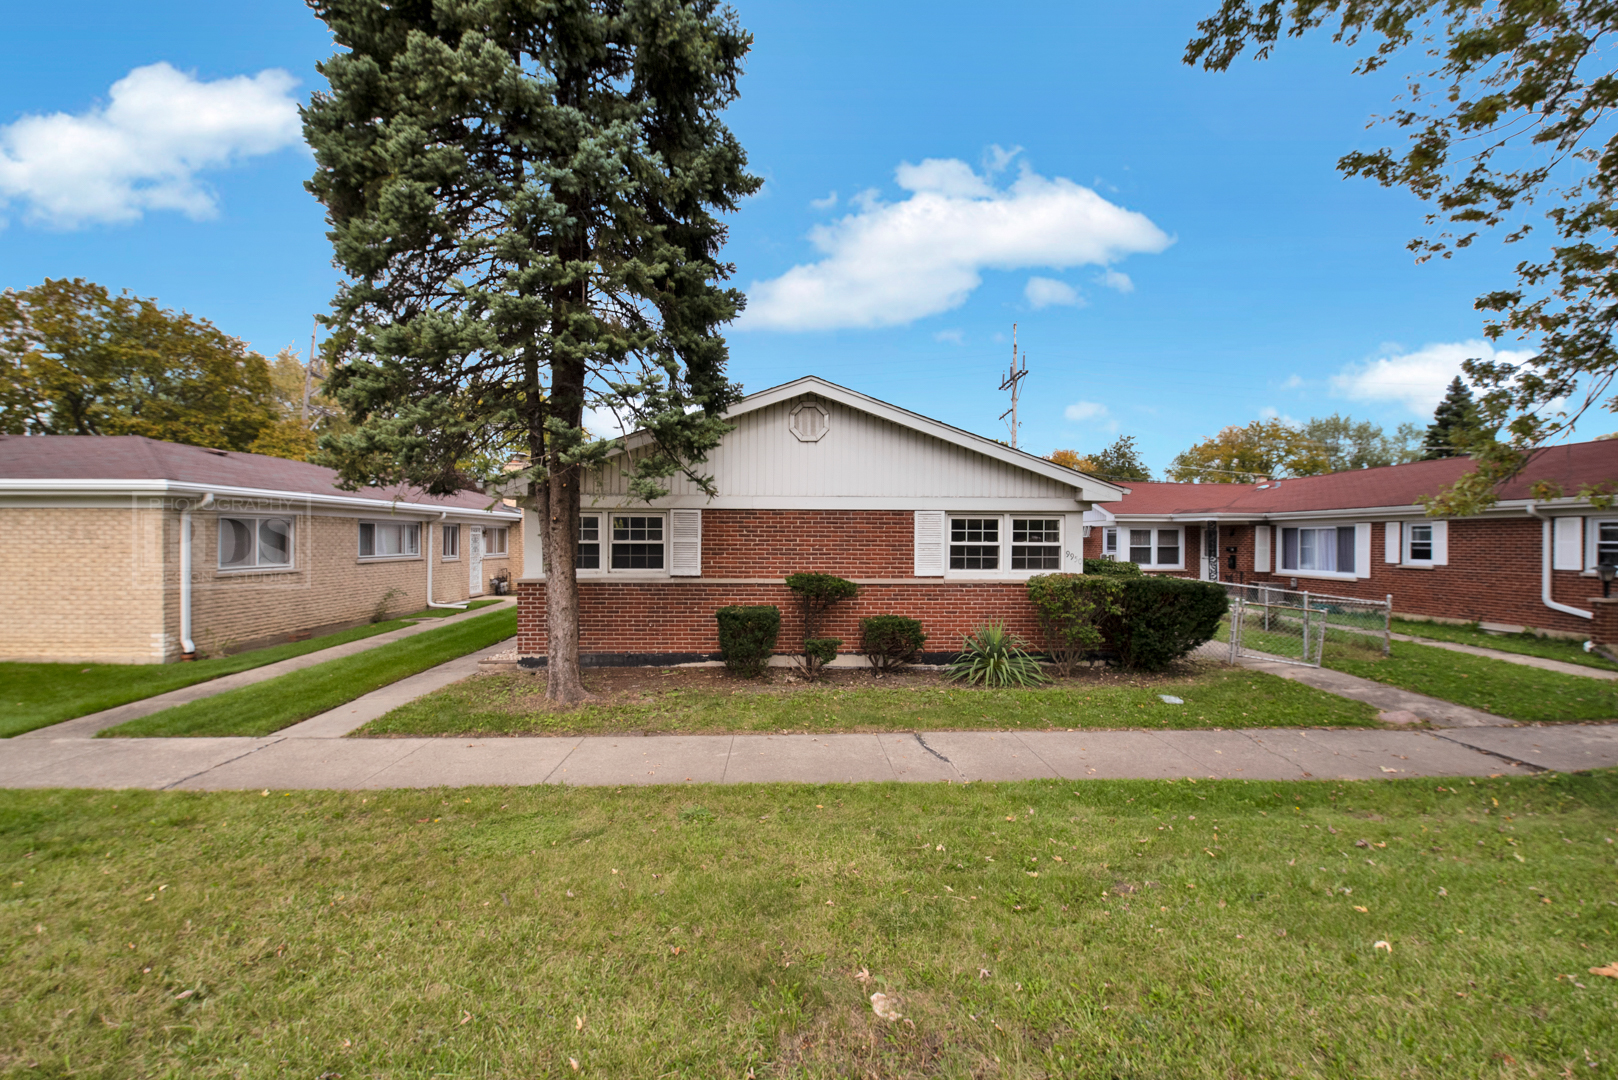 9950 West Cermak, Westchester, Illinois, 60154